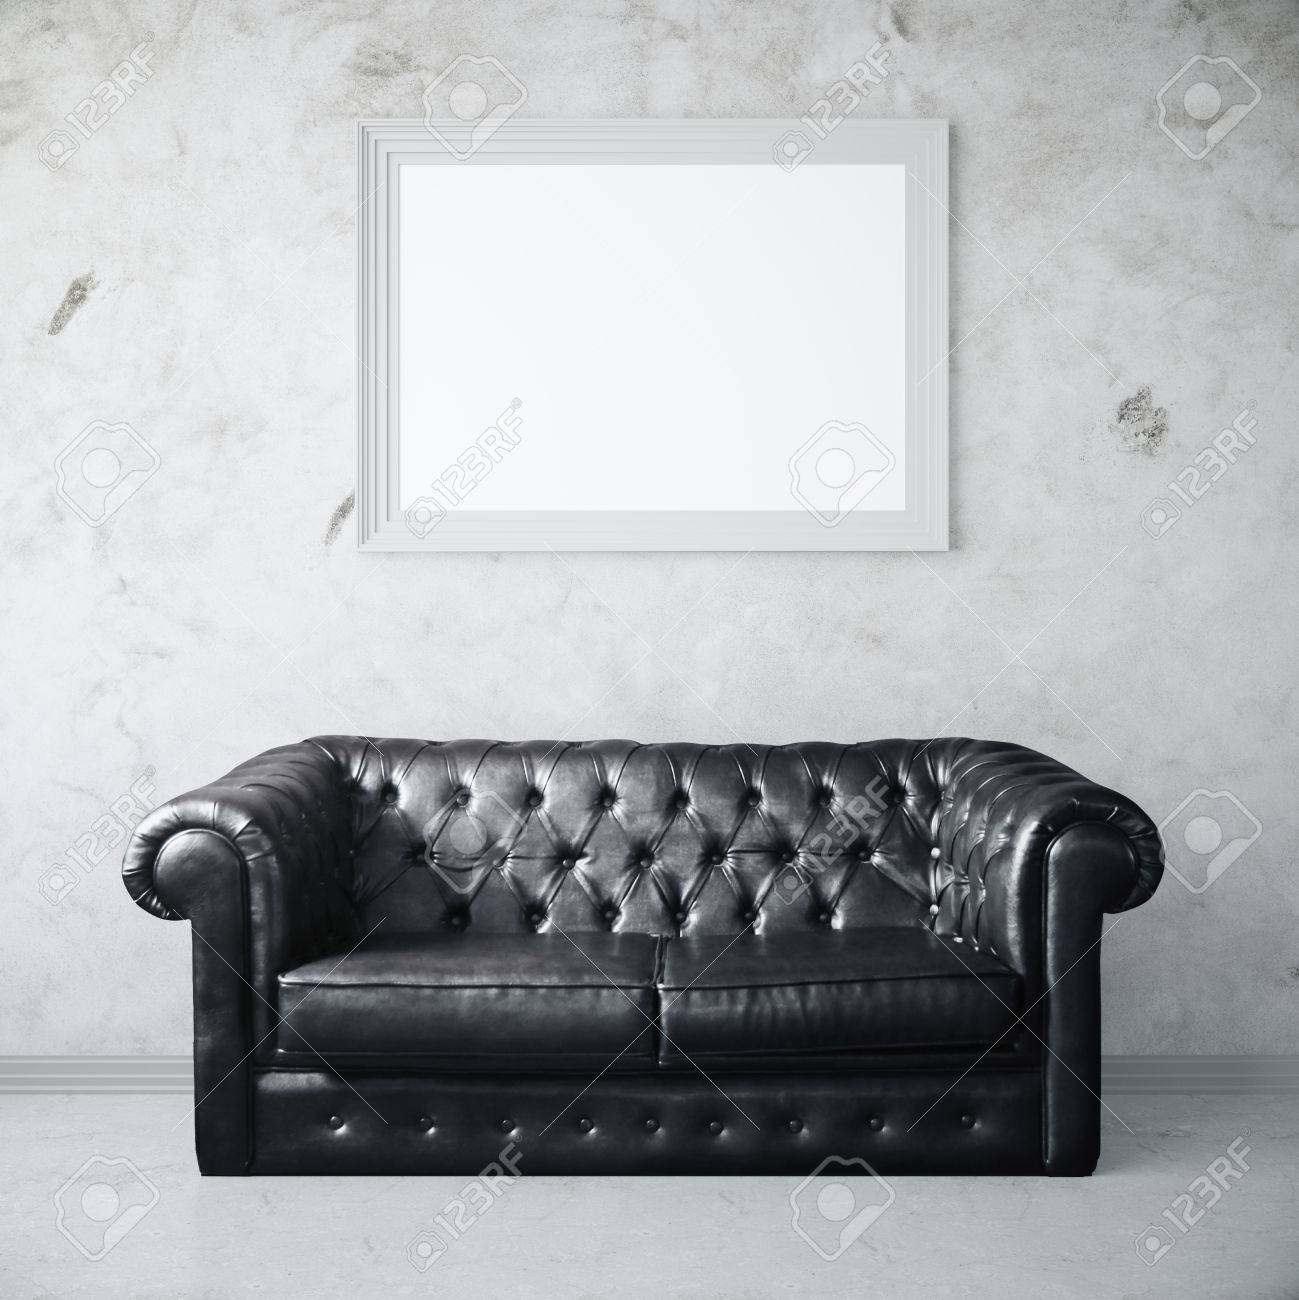 Concrete interior with dark leather sofa and blank photo frame...